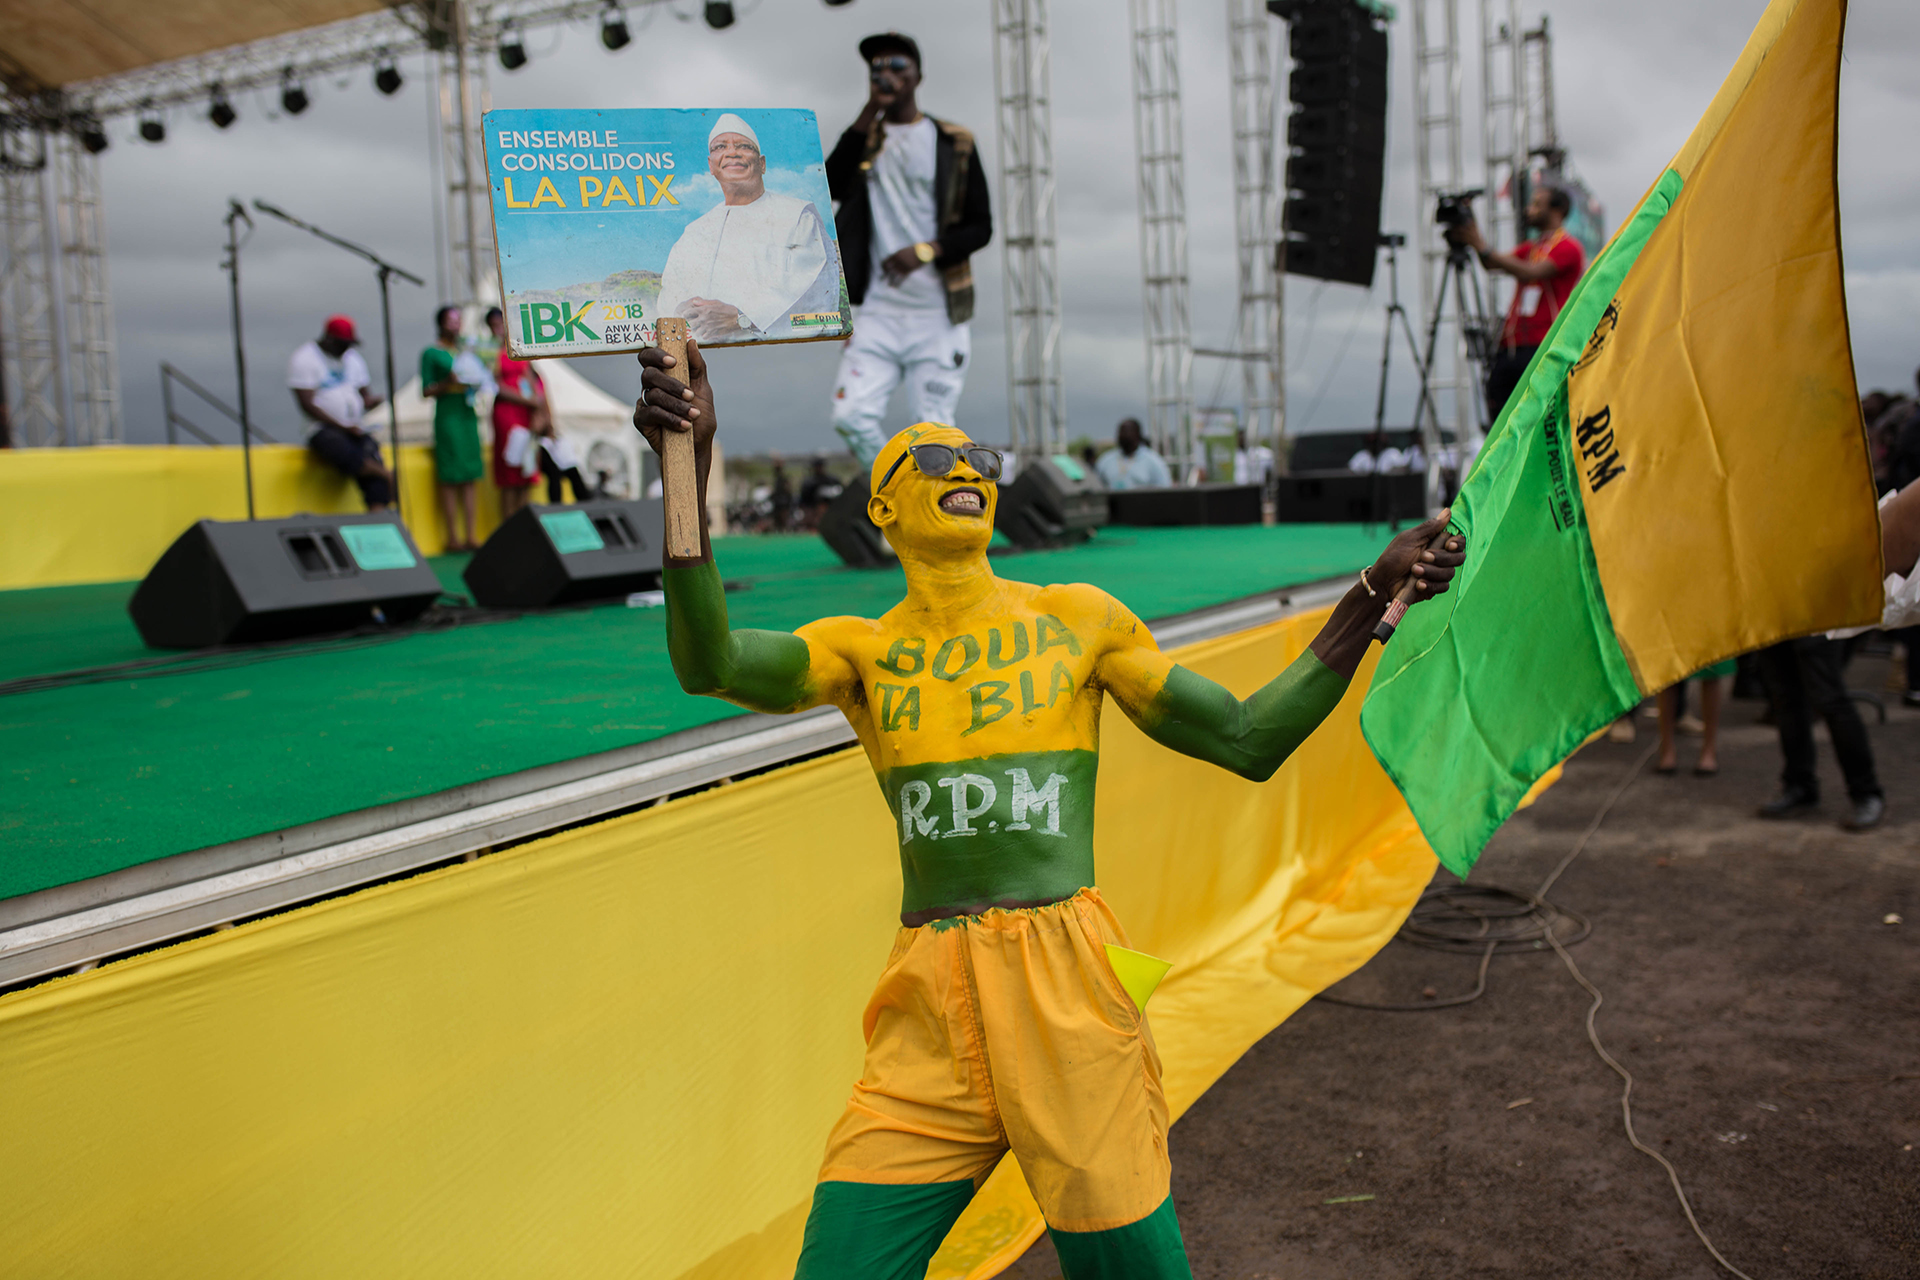 A person covered in green and yellow body paint waves a banner at a political rally.